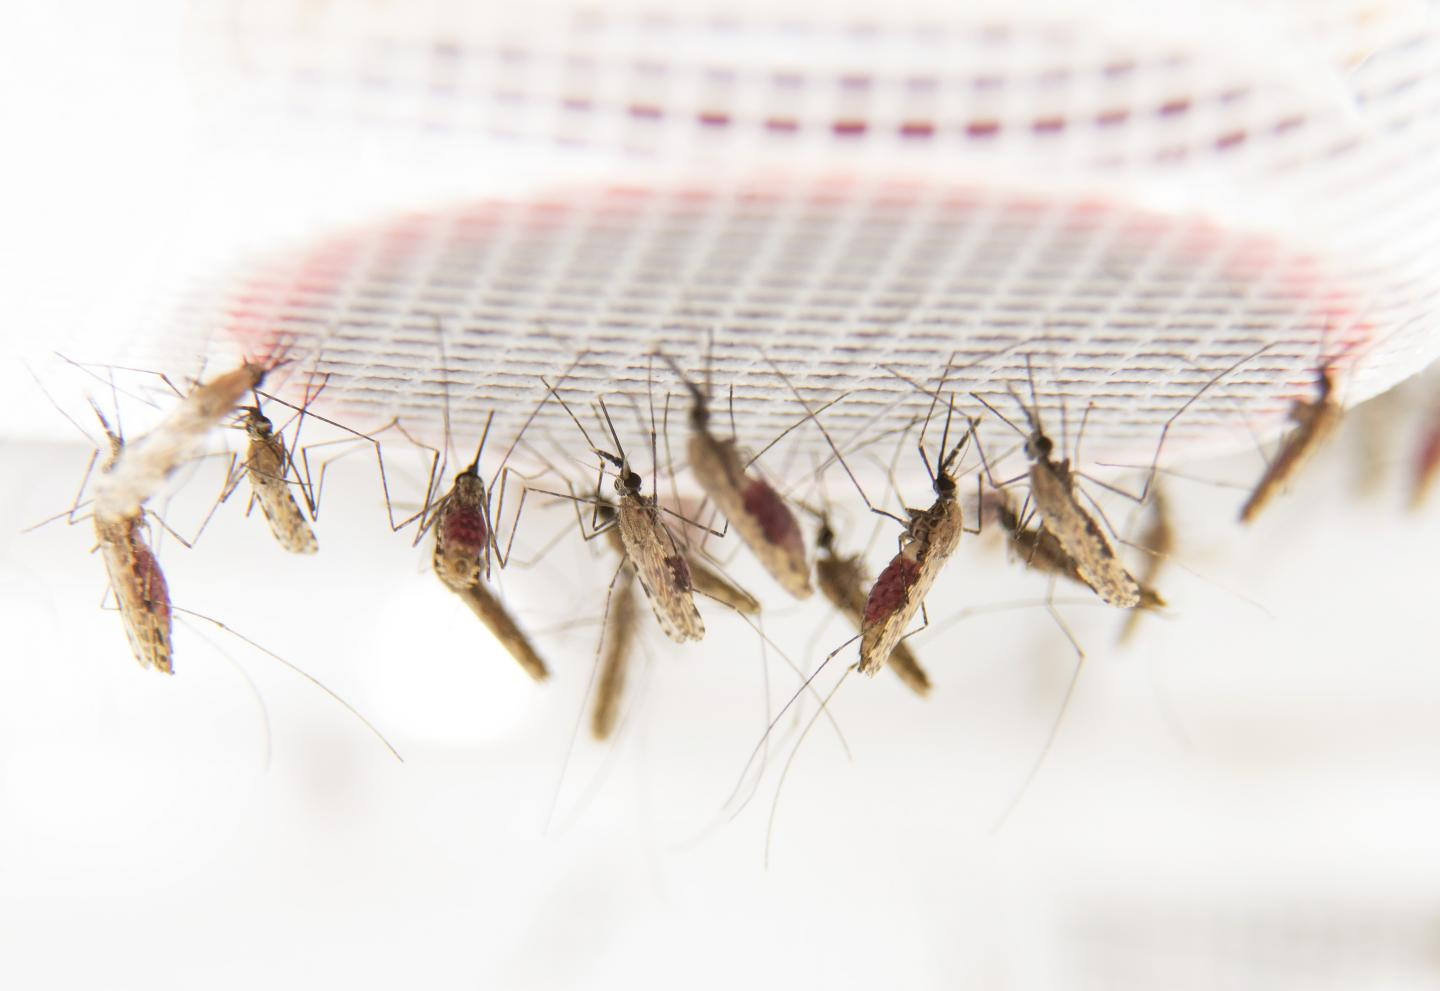 Researchers discover why malaria mosquitoes prefer to feed—and feed more—on blood from people infected with malaria. [Anna-Karin Landin/Stockholm University]